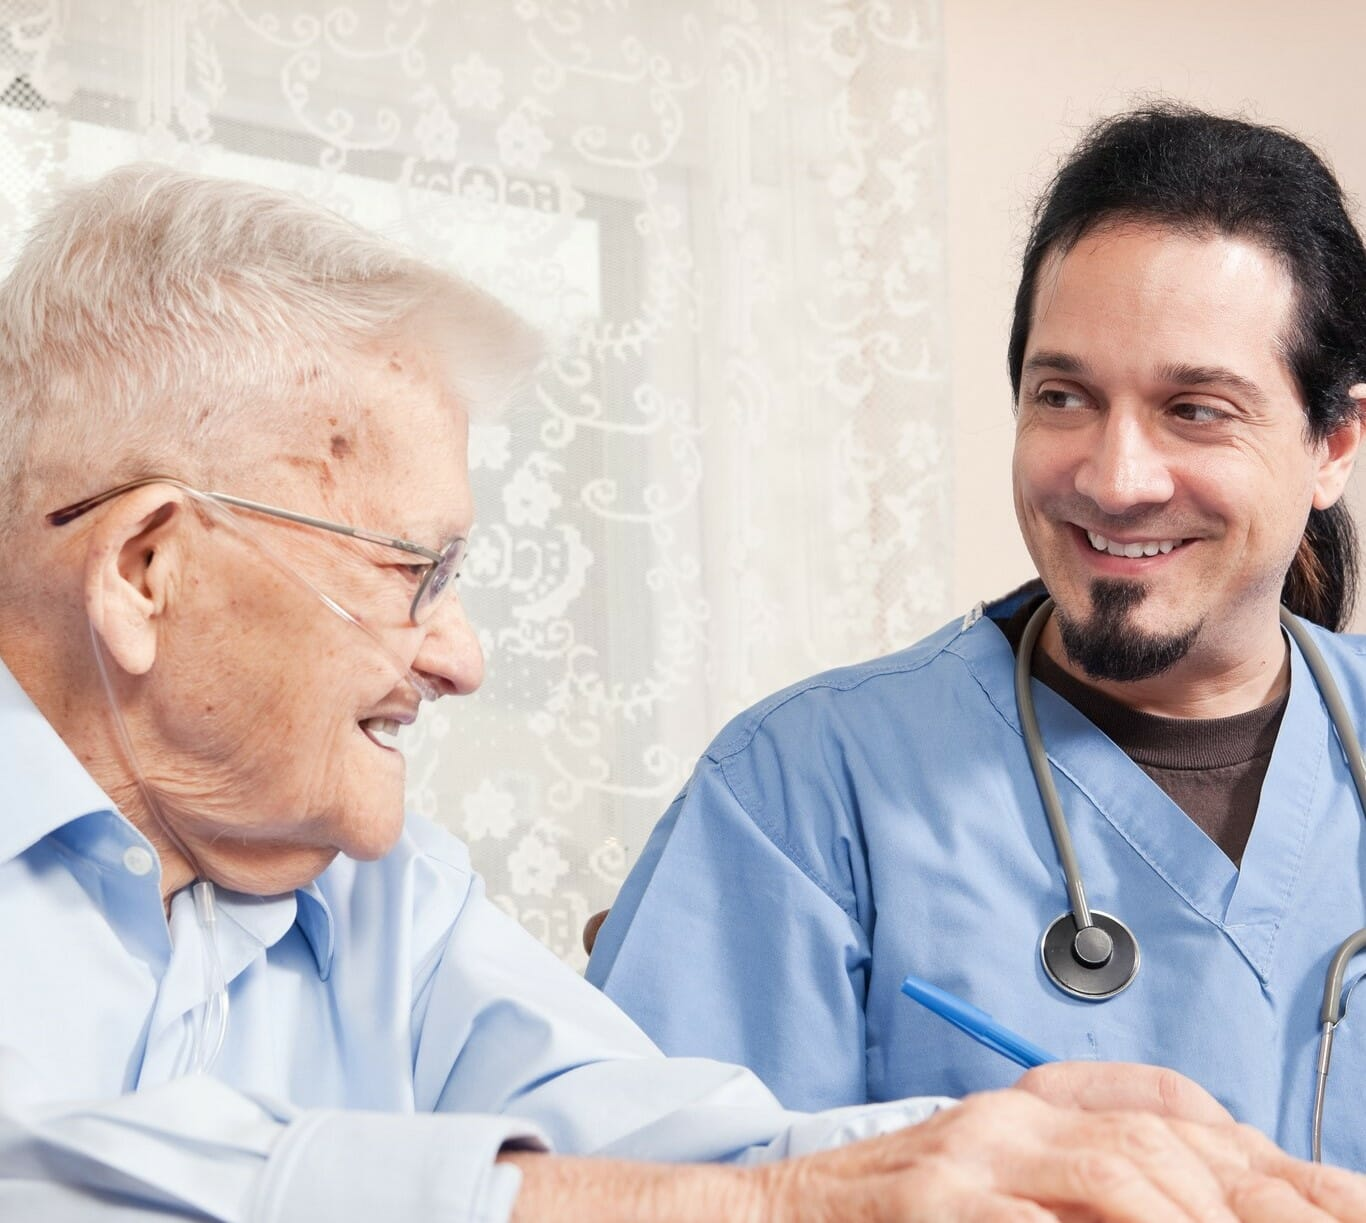 Home-based patient centered care enabled by digital health